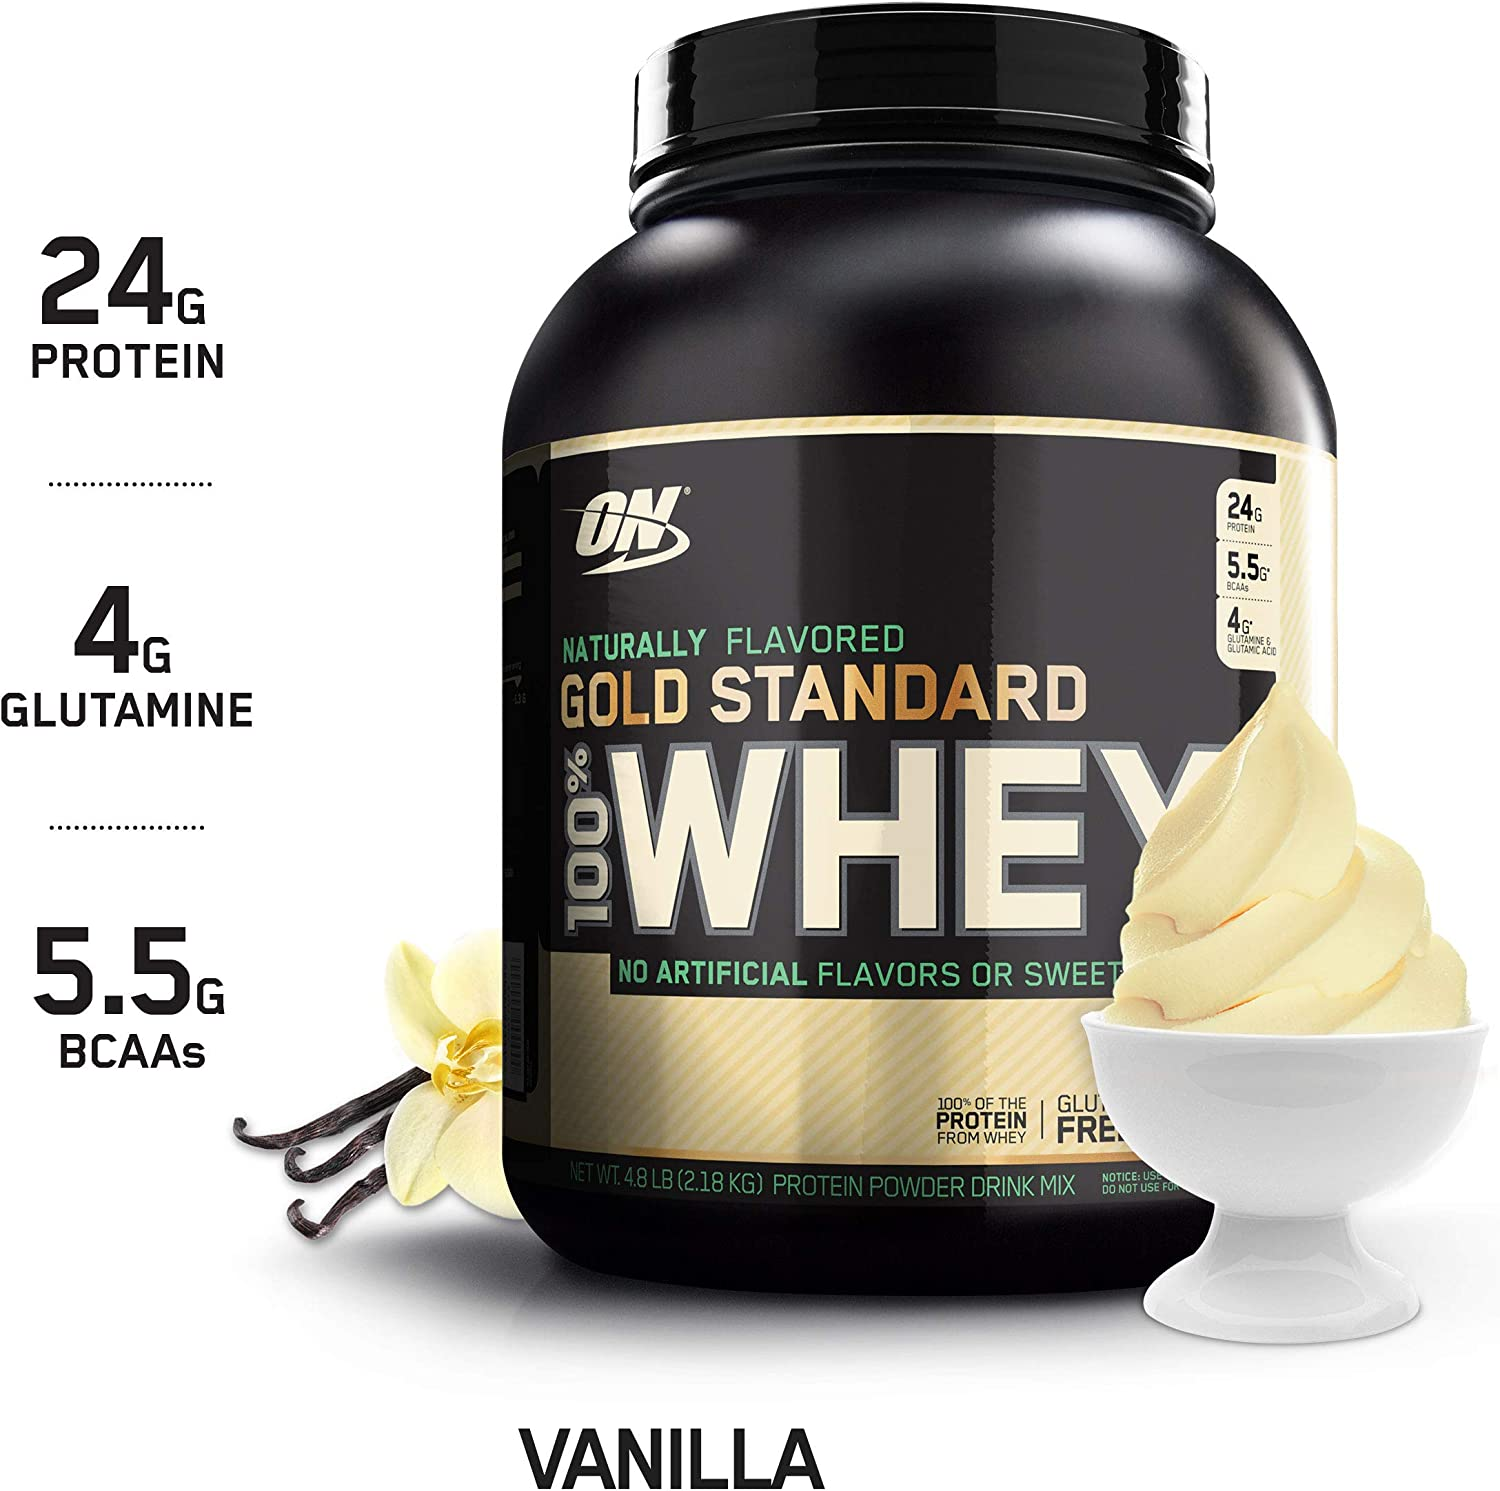 OPTIMUM NUTRITION GOLD STANDARD 100 Whey Protein Powder, Naturally Flavored Vanilla, 4.8 Pound